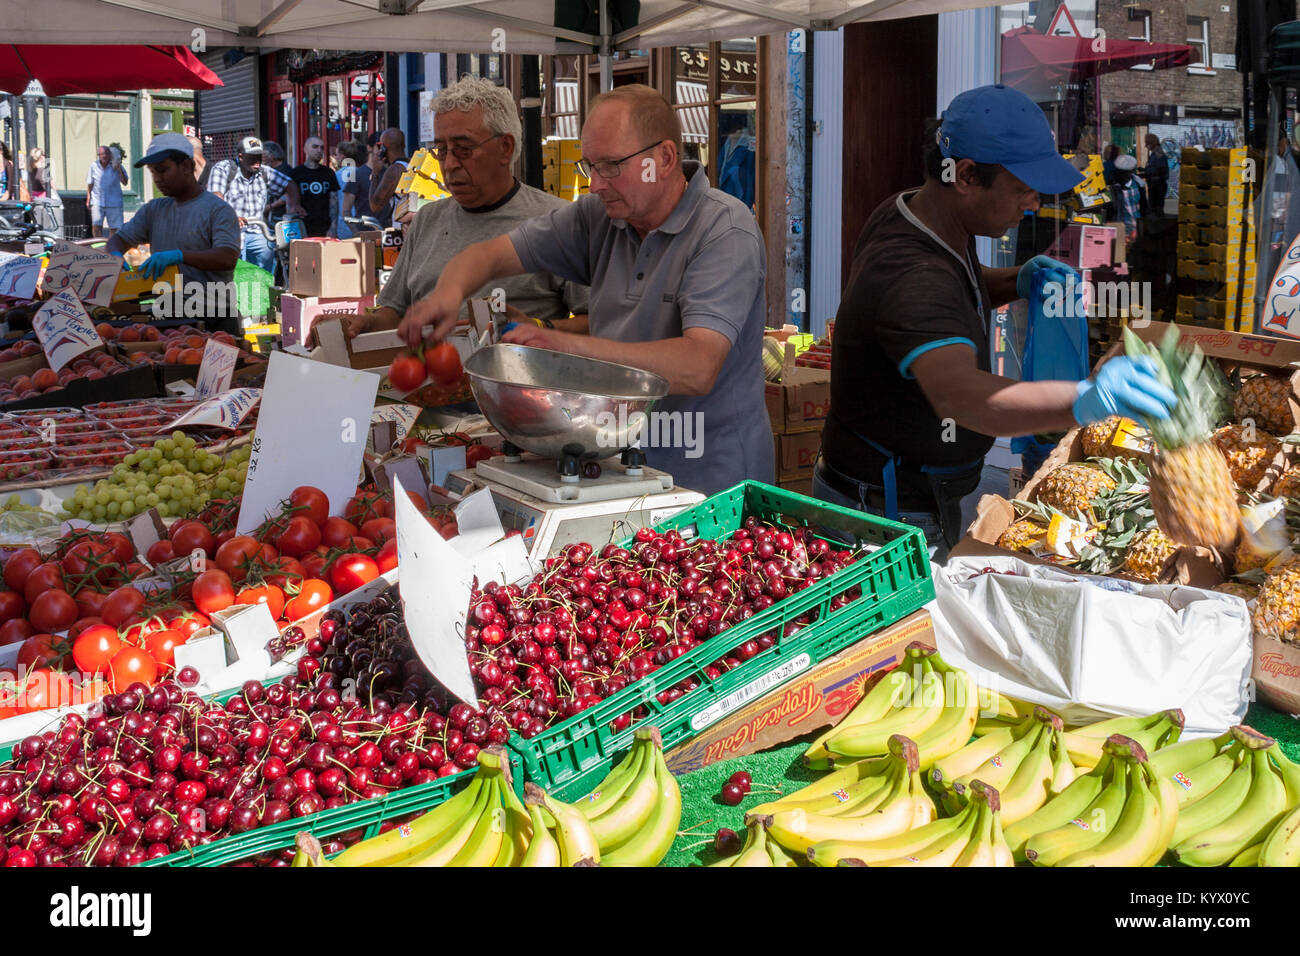 Brick Lane Market market traders on a fruit stall. Brick Lane, East London, England, GB, UK. Stock Photo